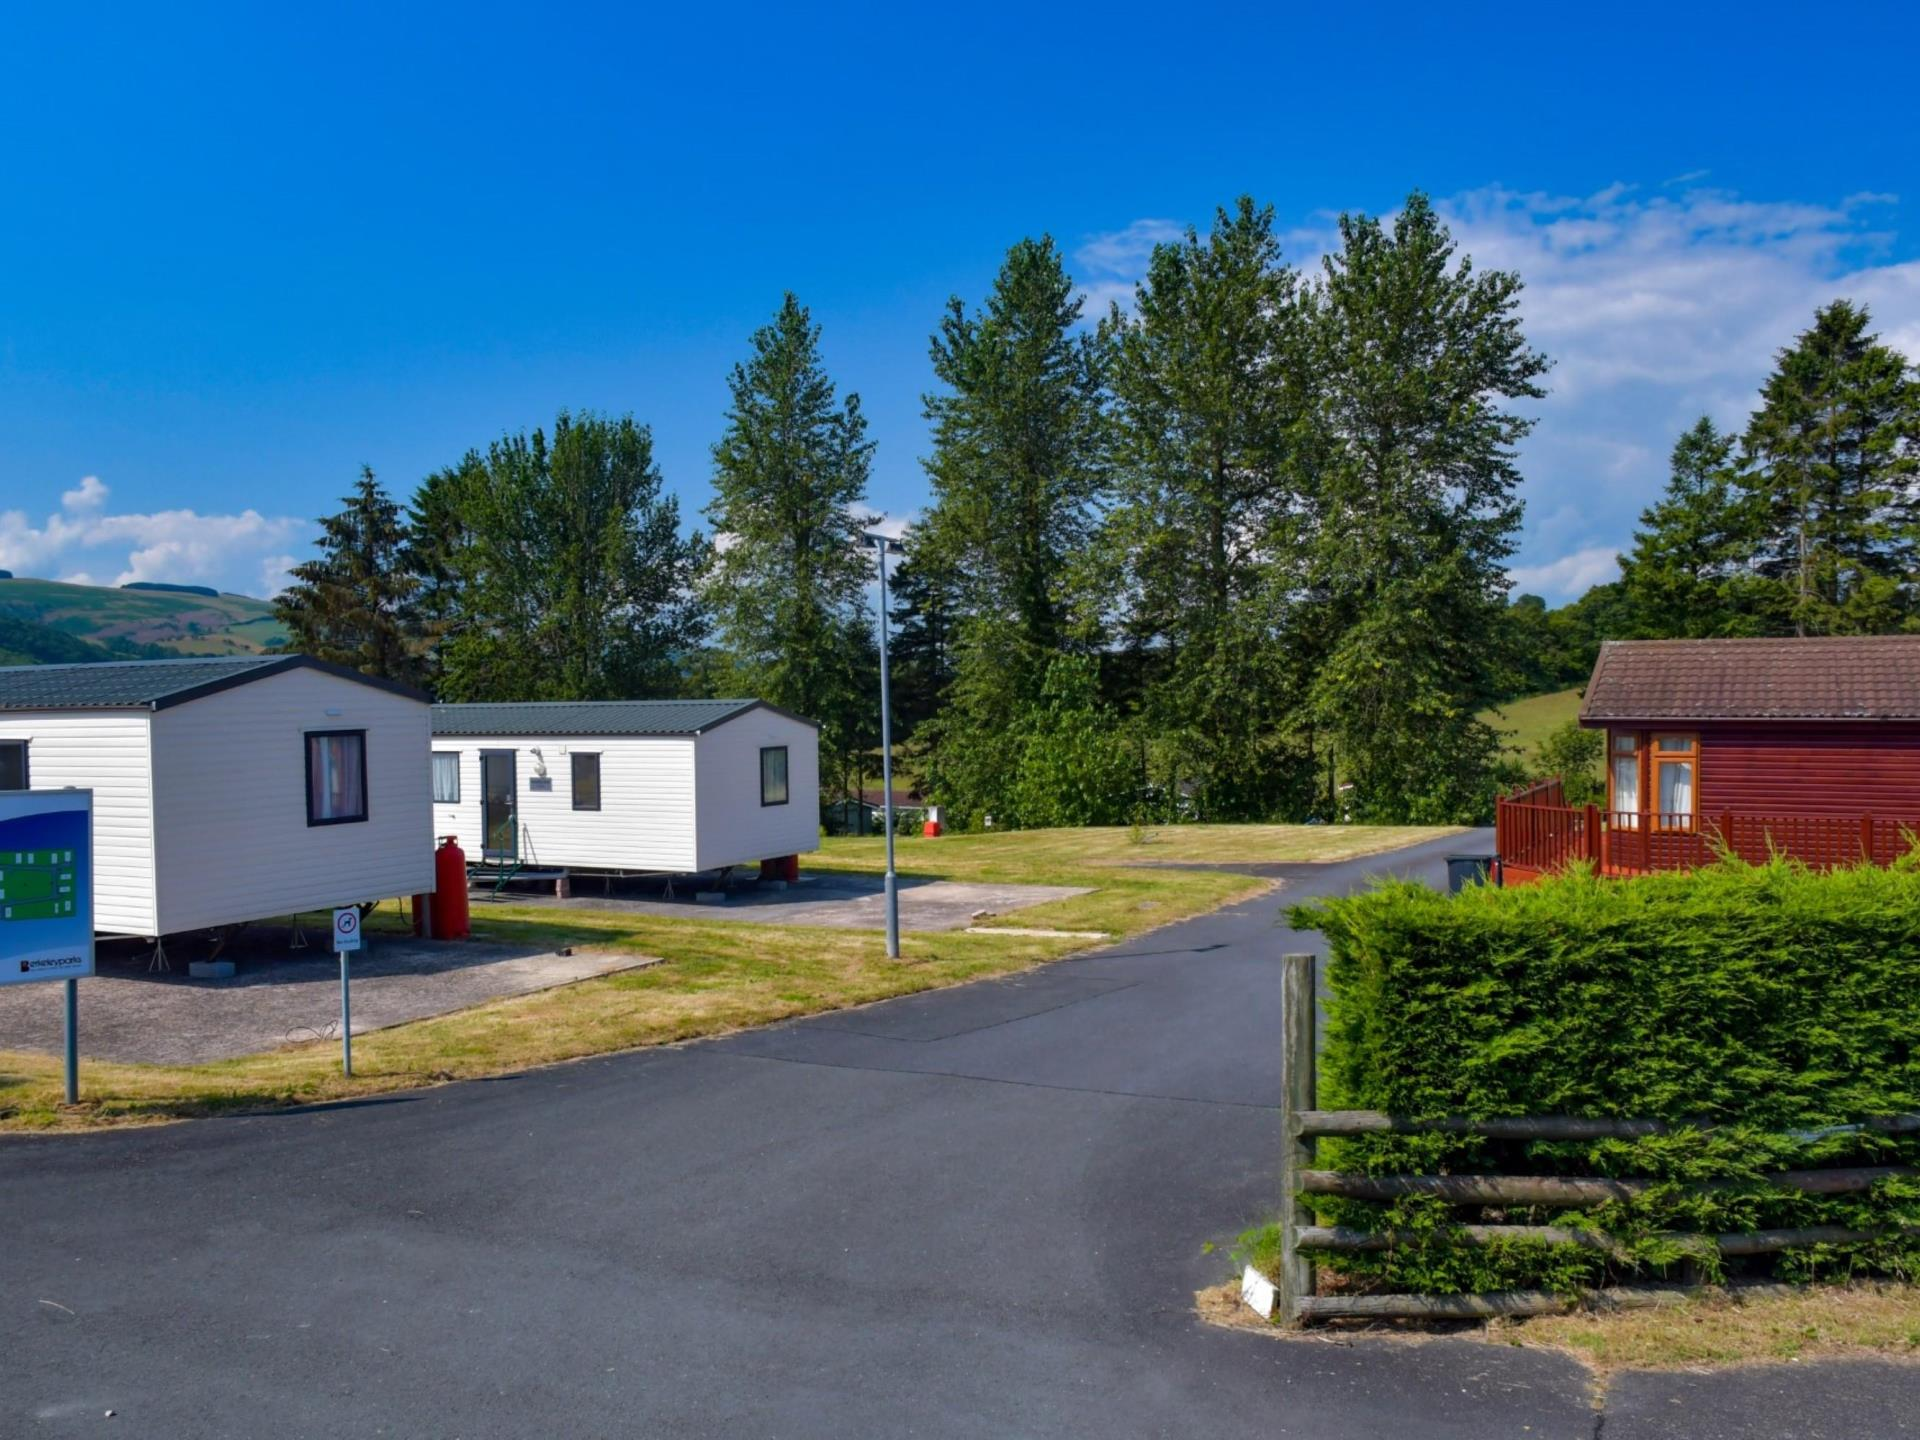 Llewelyn Holiday Park View